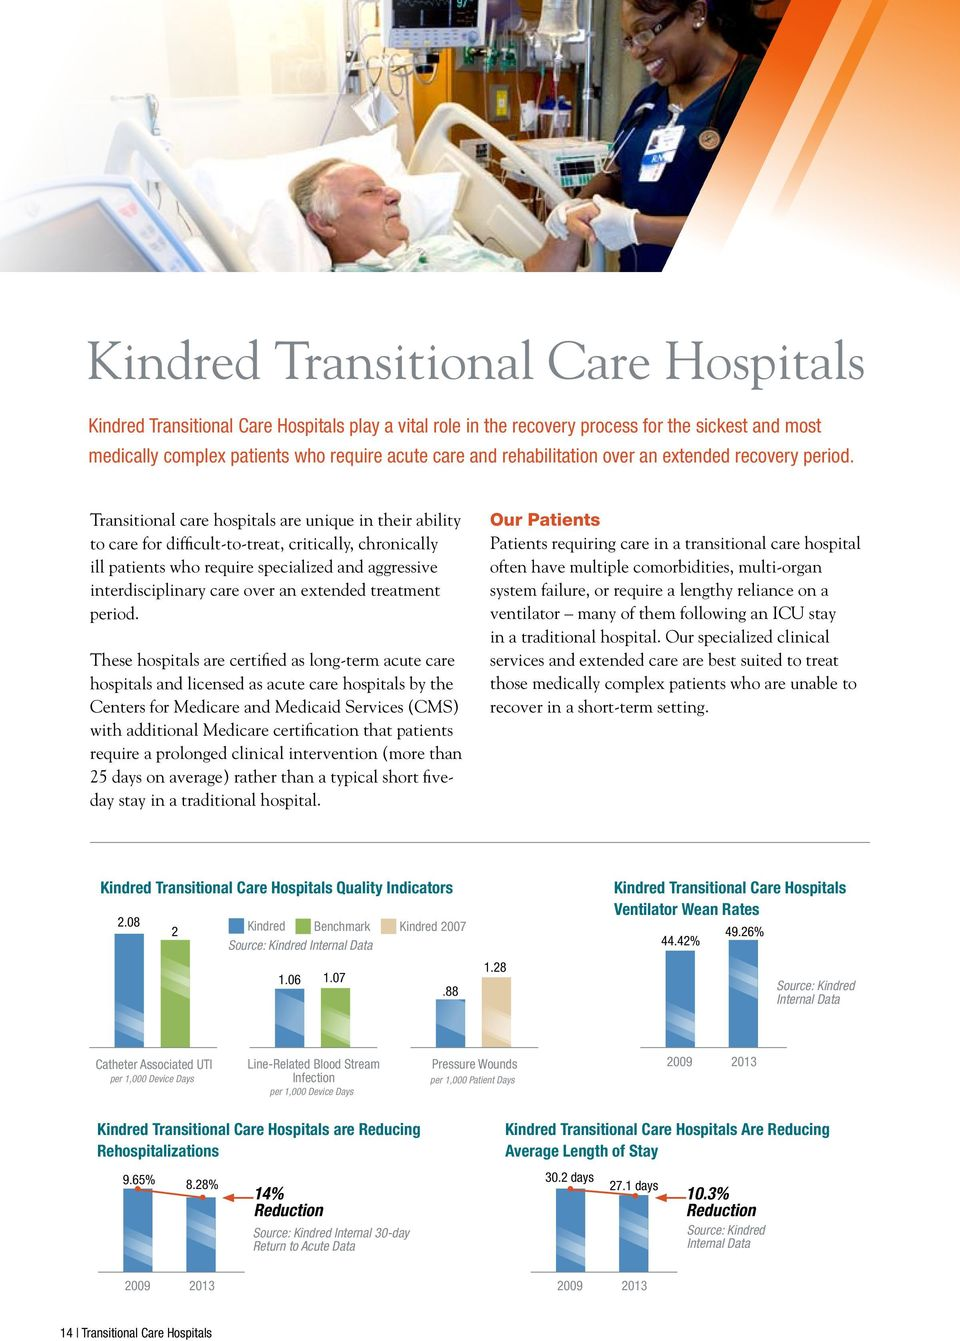 Transitional care hospitals are unique in their ability to care for difficult-to-treat, critically, chronically ill patients who require specialized and aggressive interdisciplinary care over an